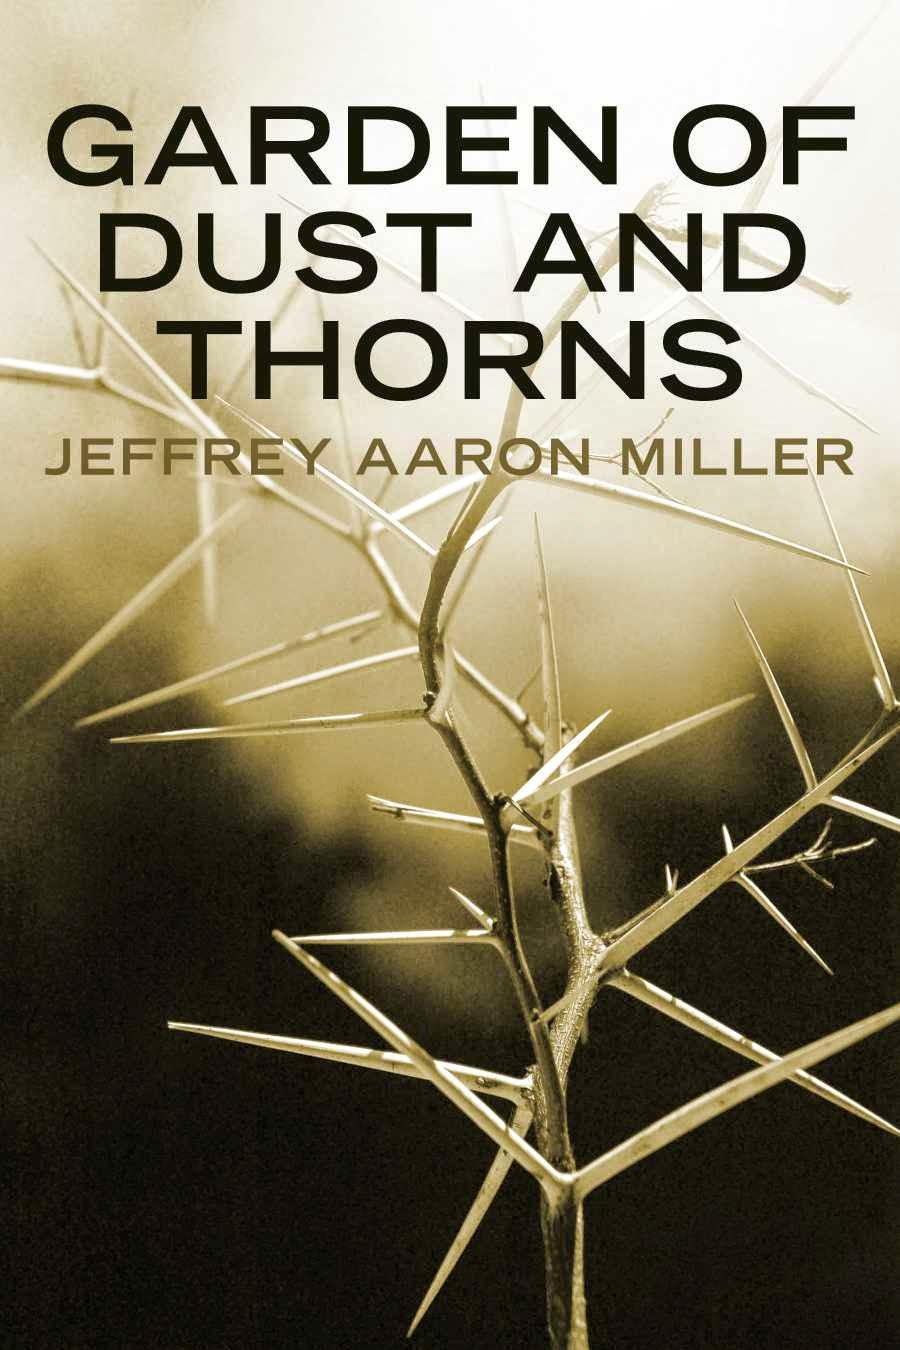 http://www.jeffreyaaronmiller.com/p/garden-of-dust-and-thorns.html